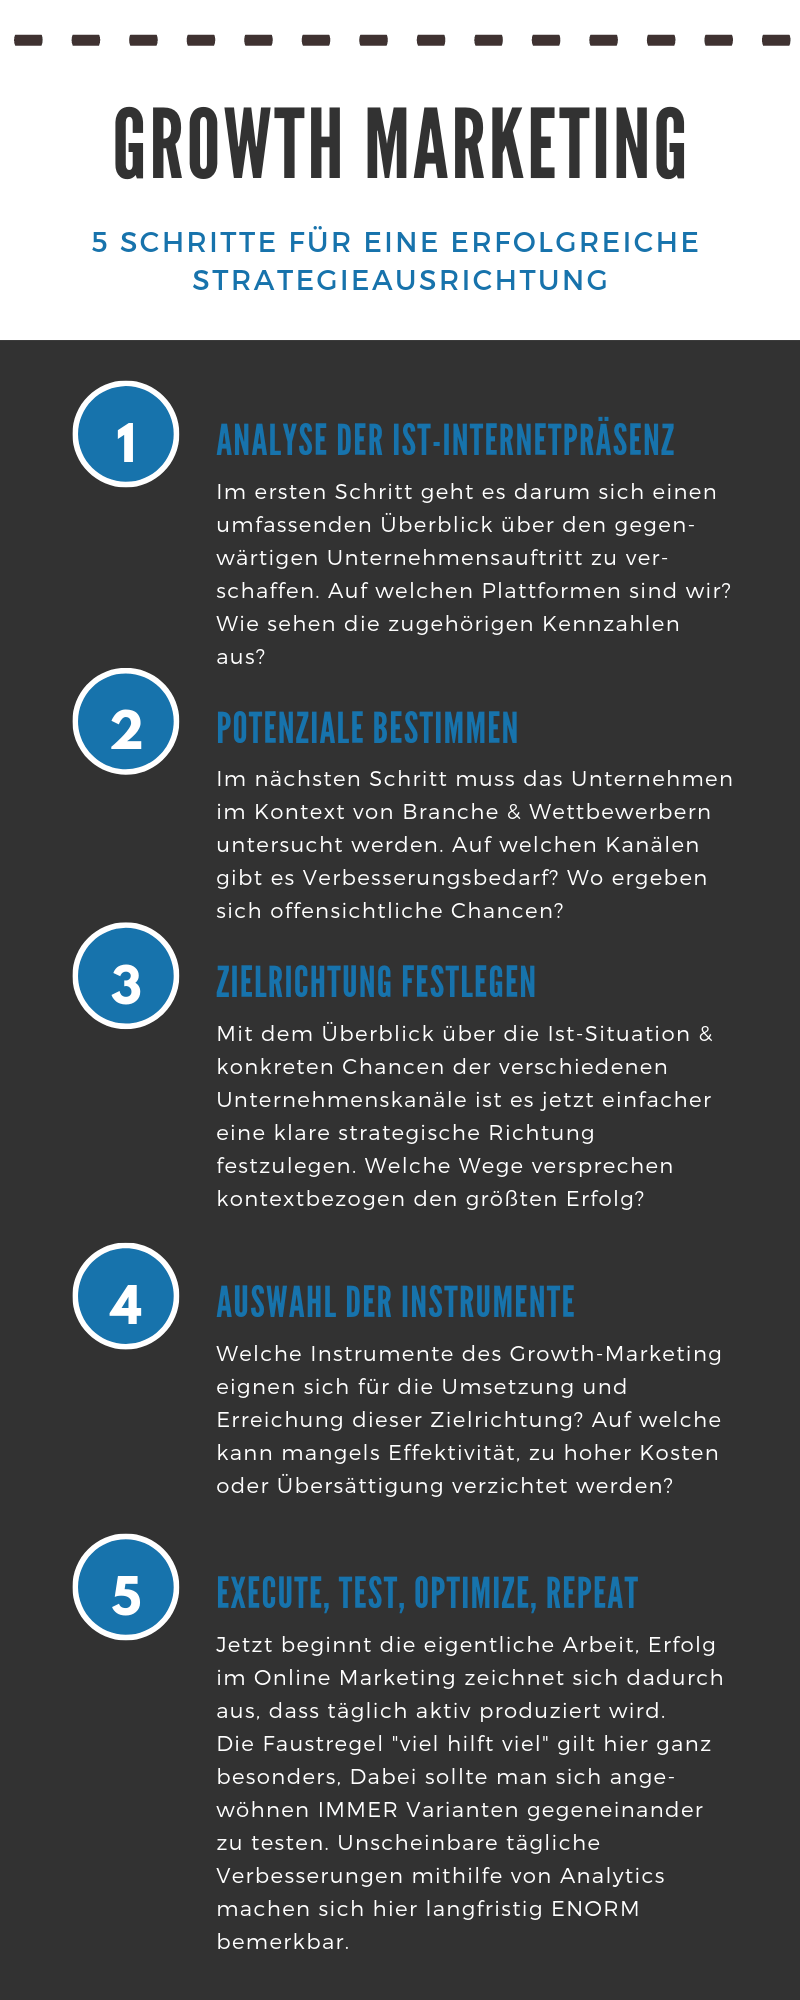 Online Marketing Growth Marketing (2)